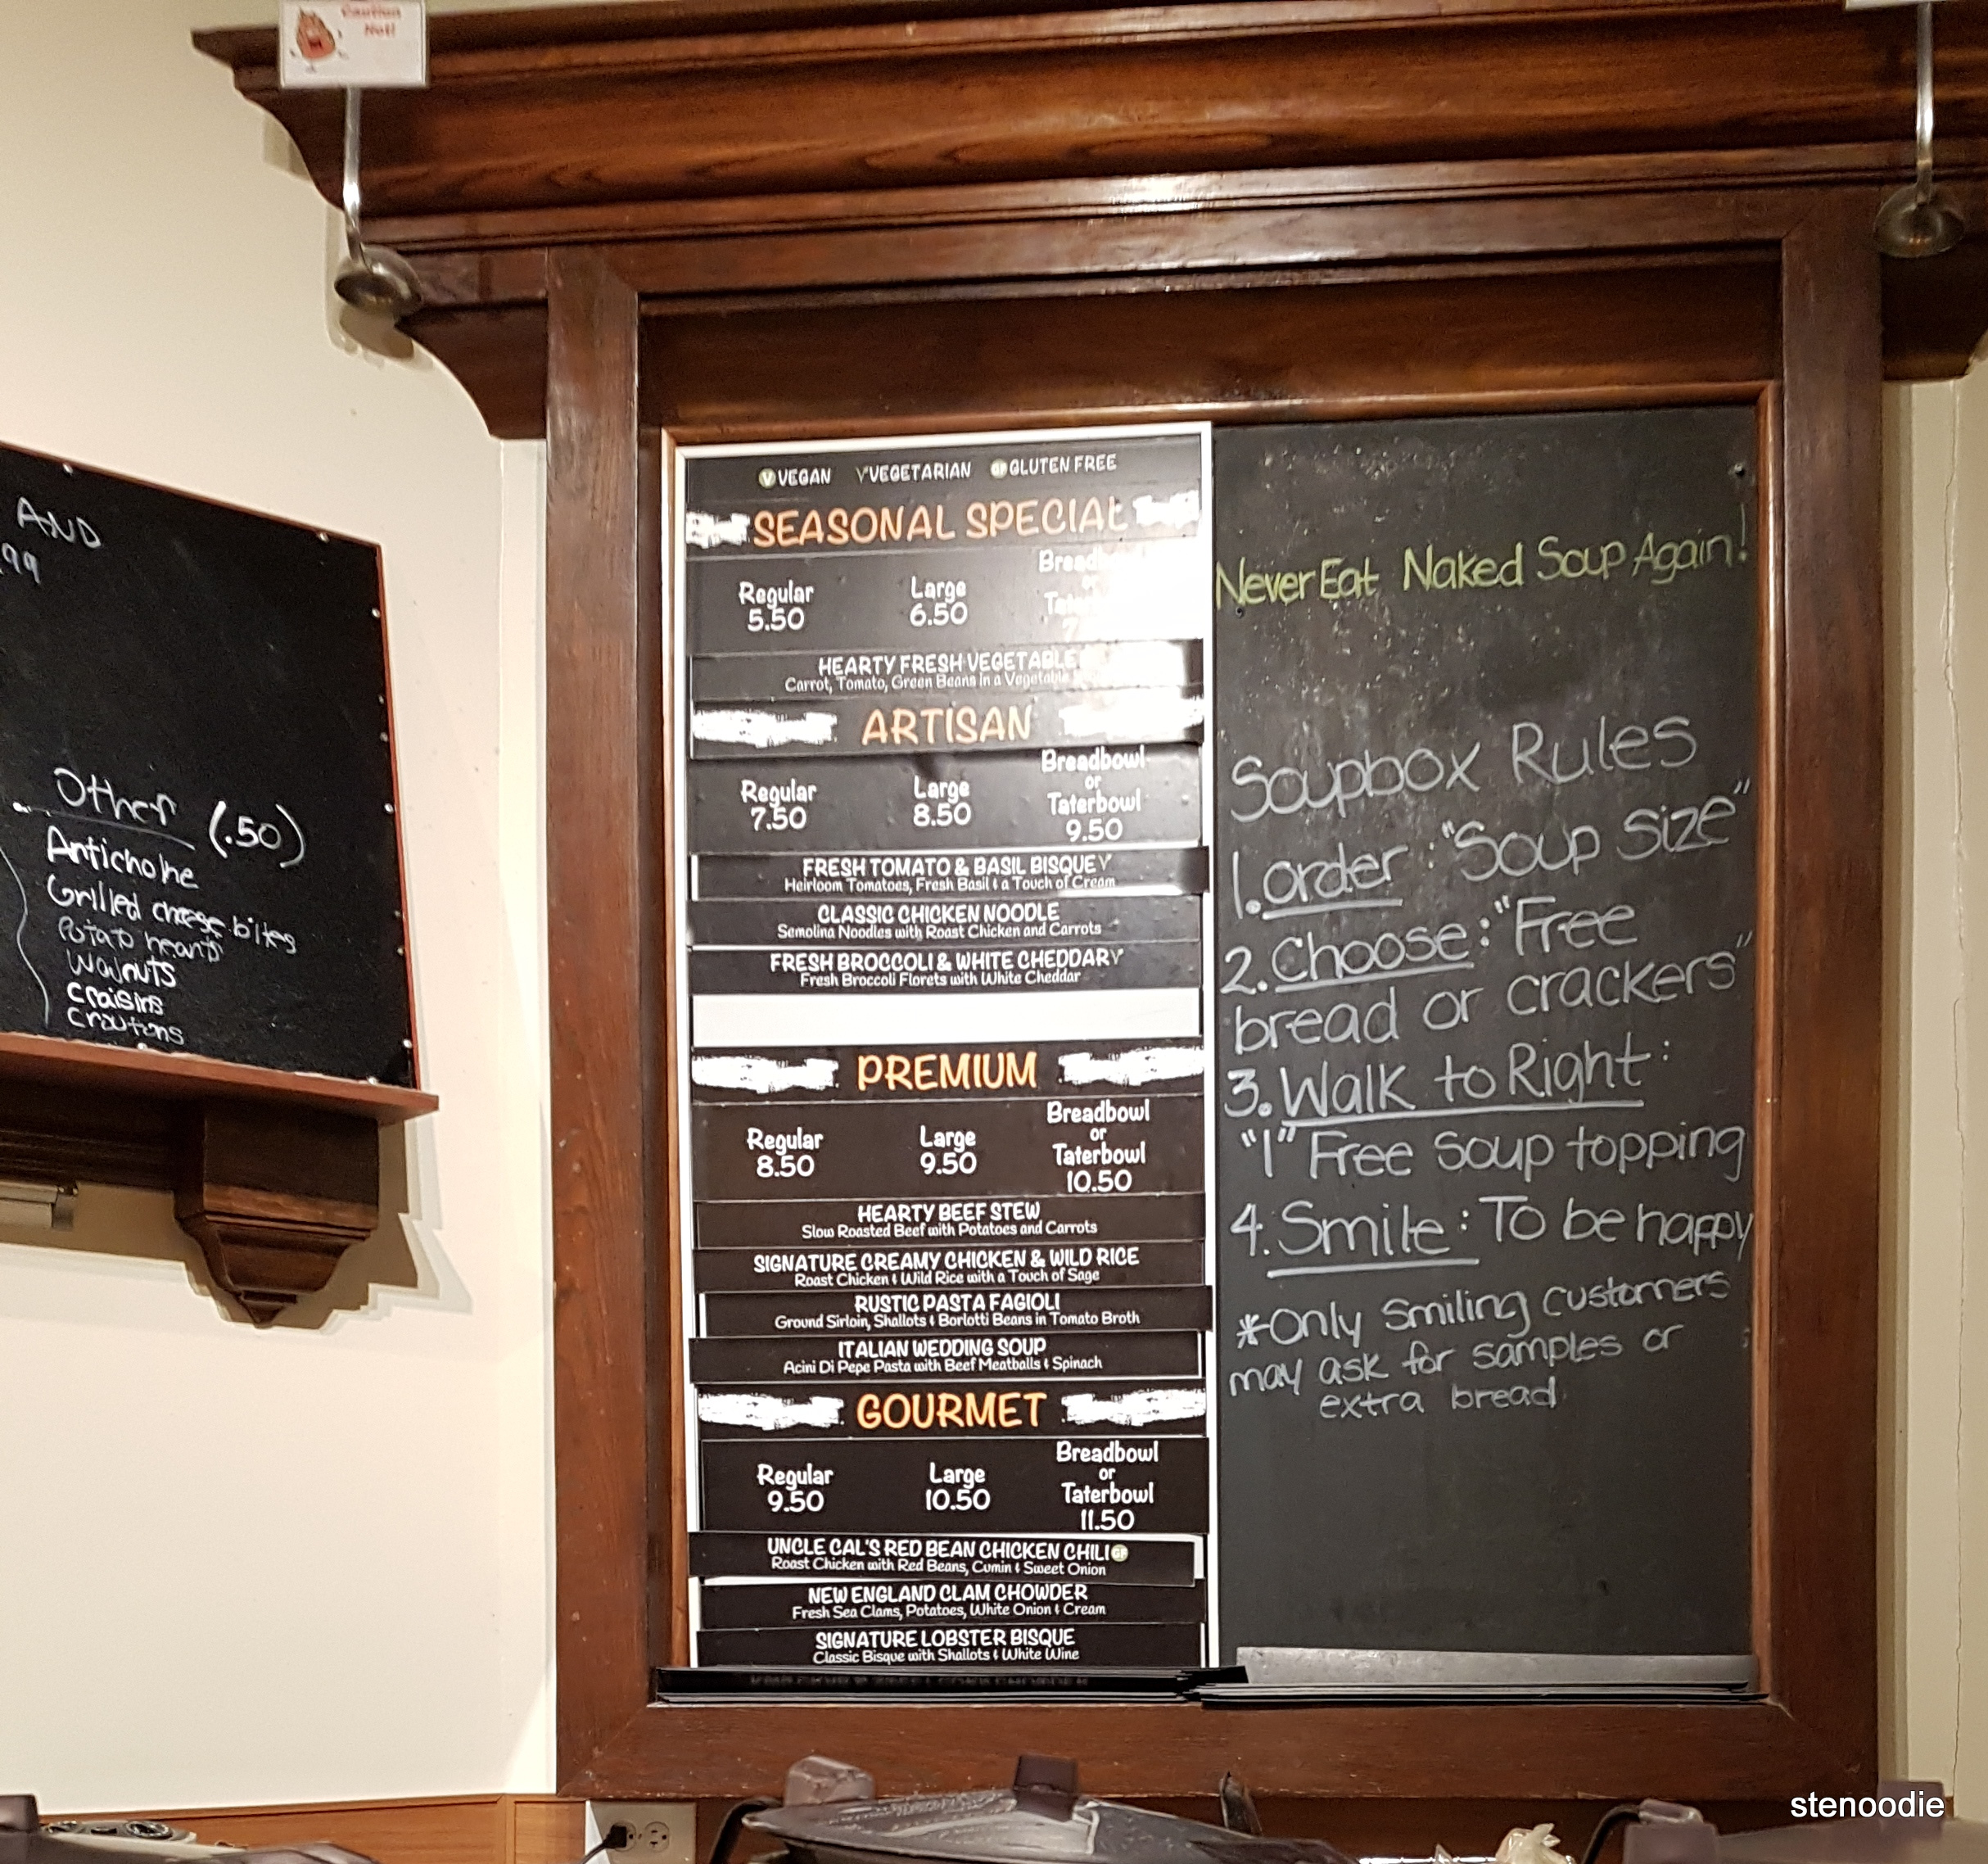 Soupbox menu and prices